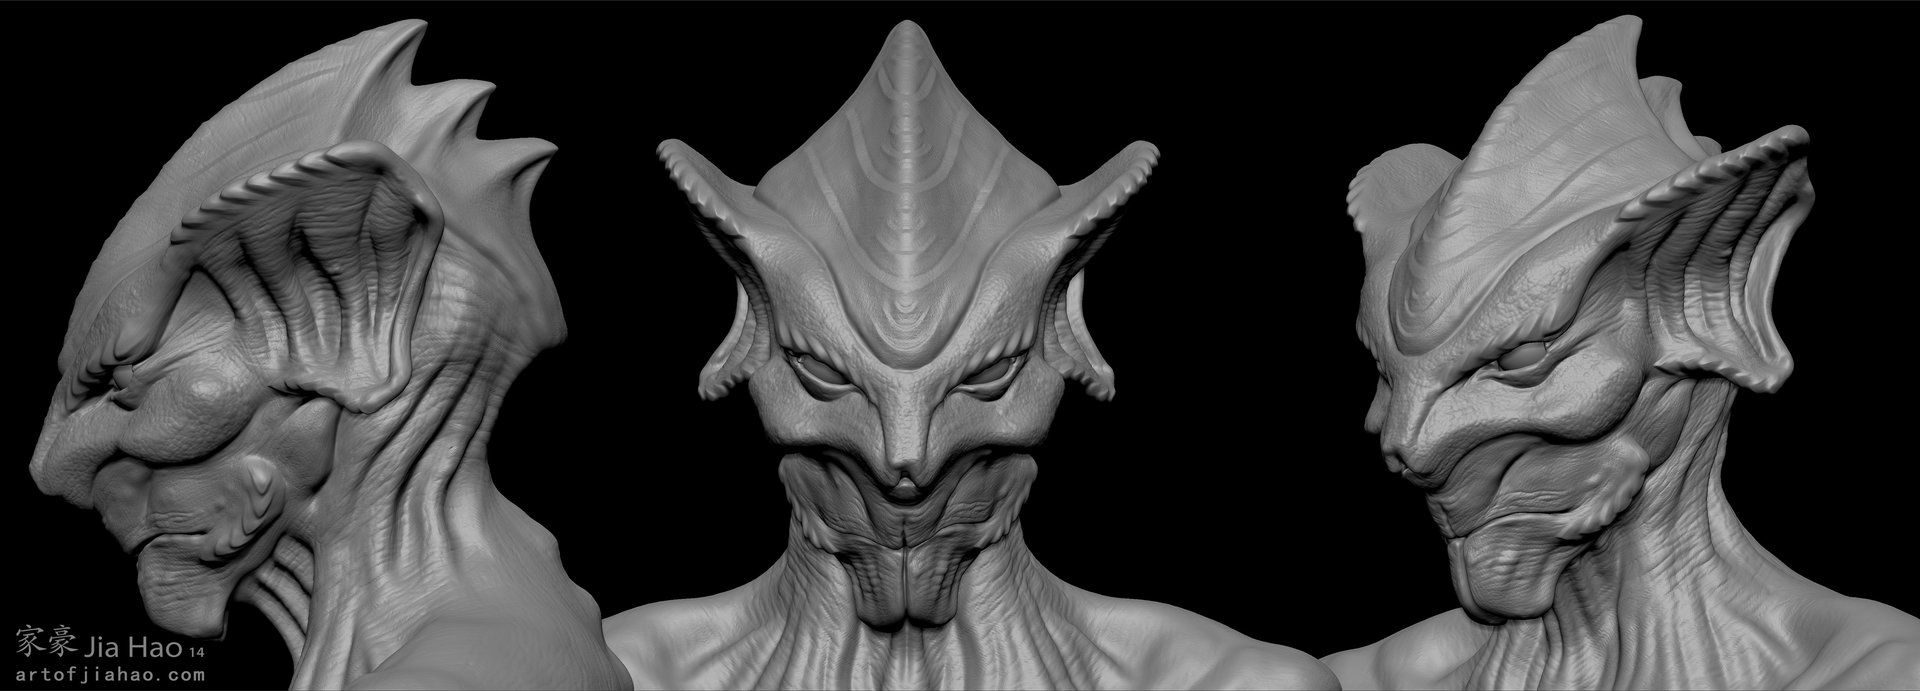 Jia hao 2014 01 alien bust 1 views sculpt